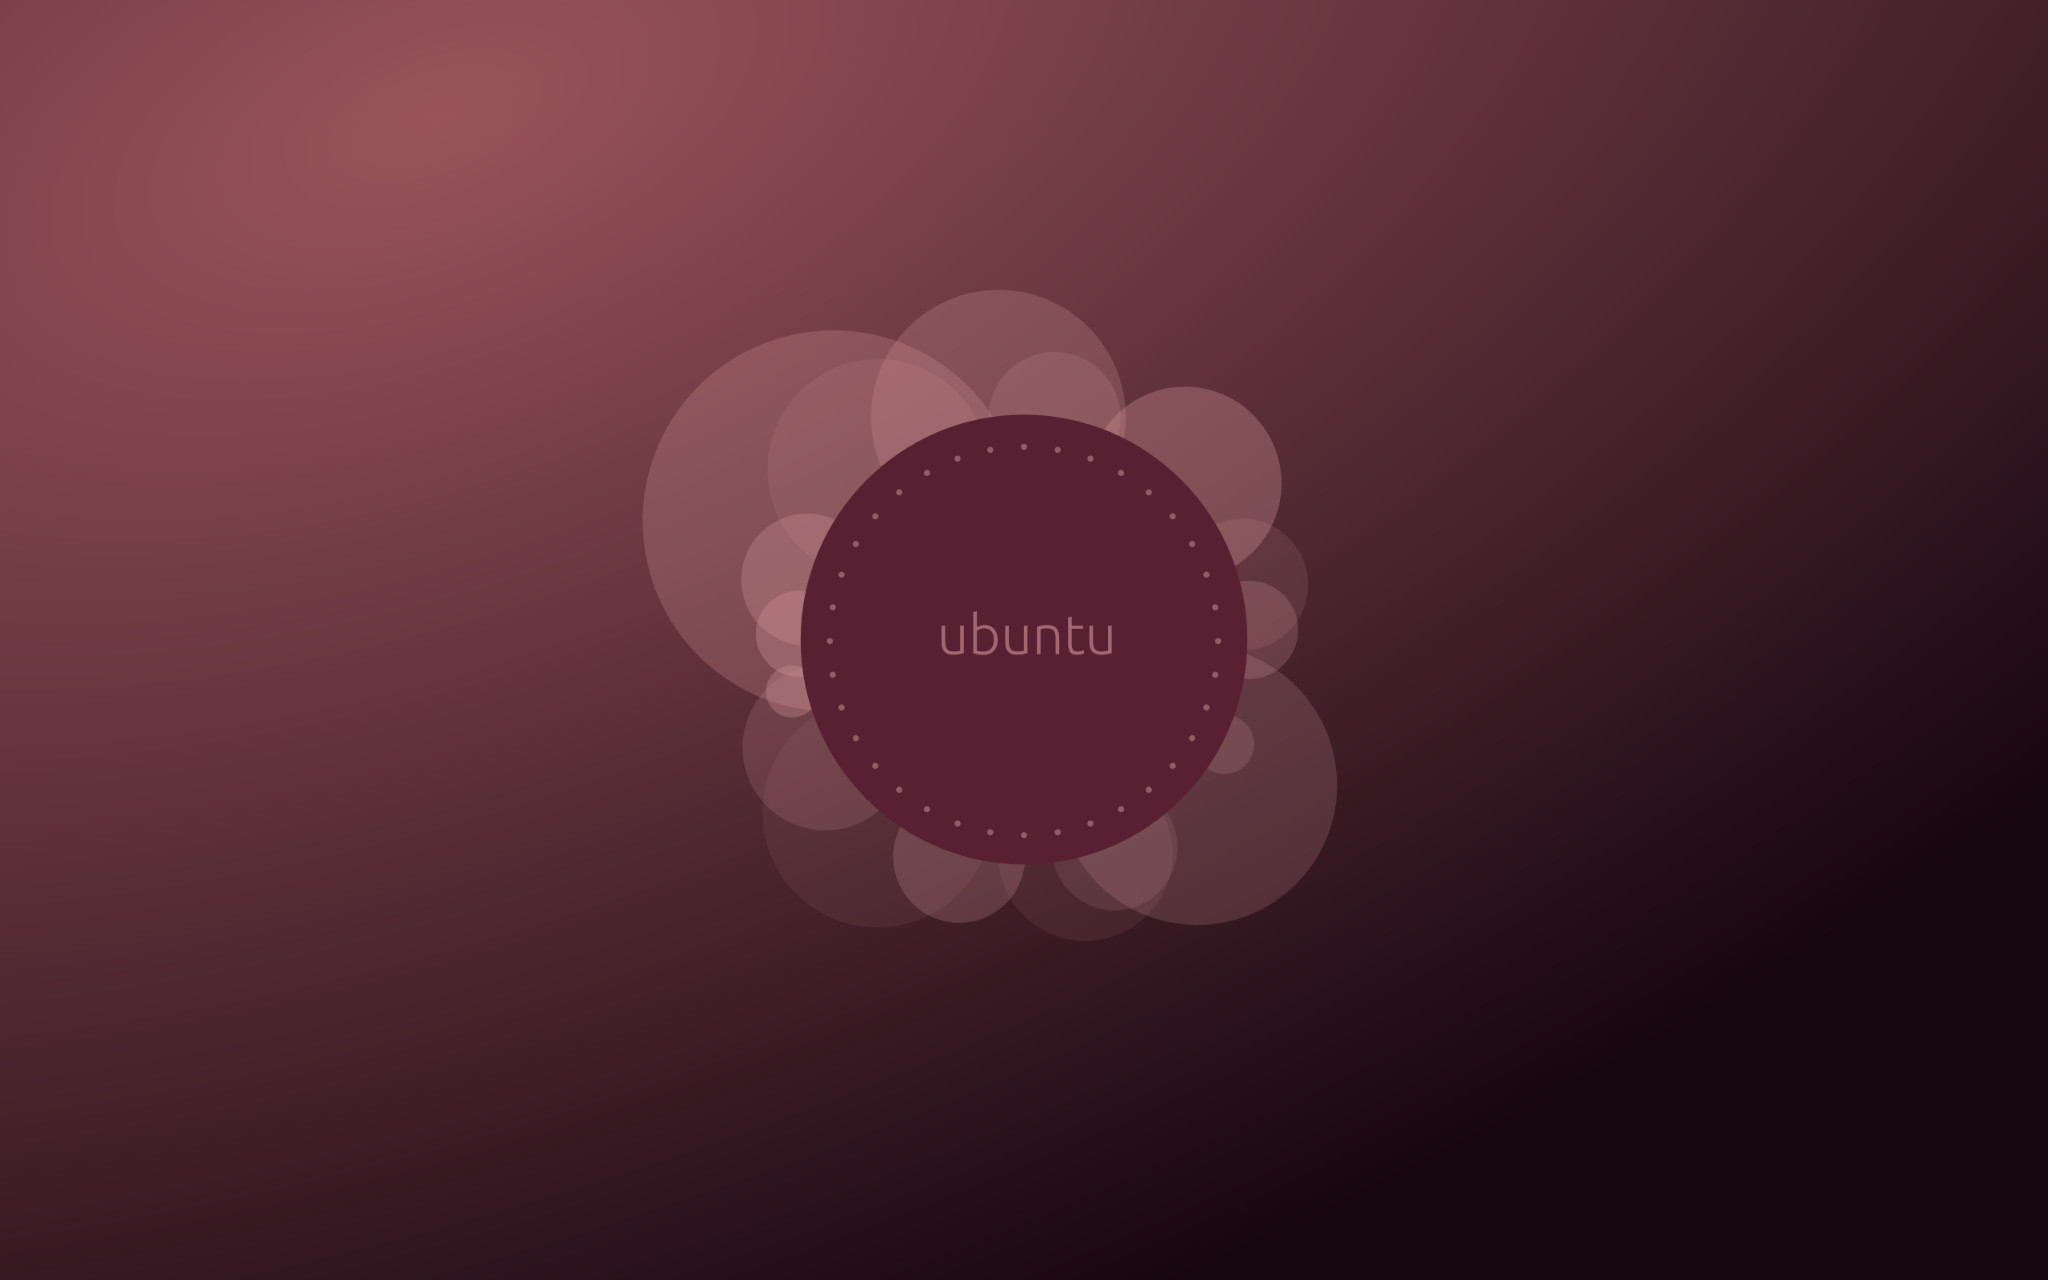 Ubuntu Wallpapers HD 2048x1280